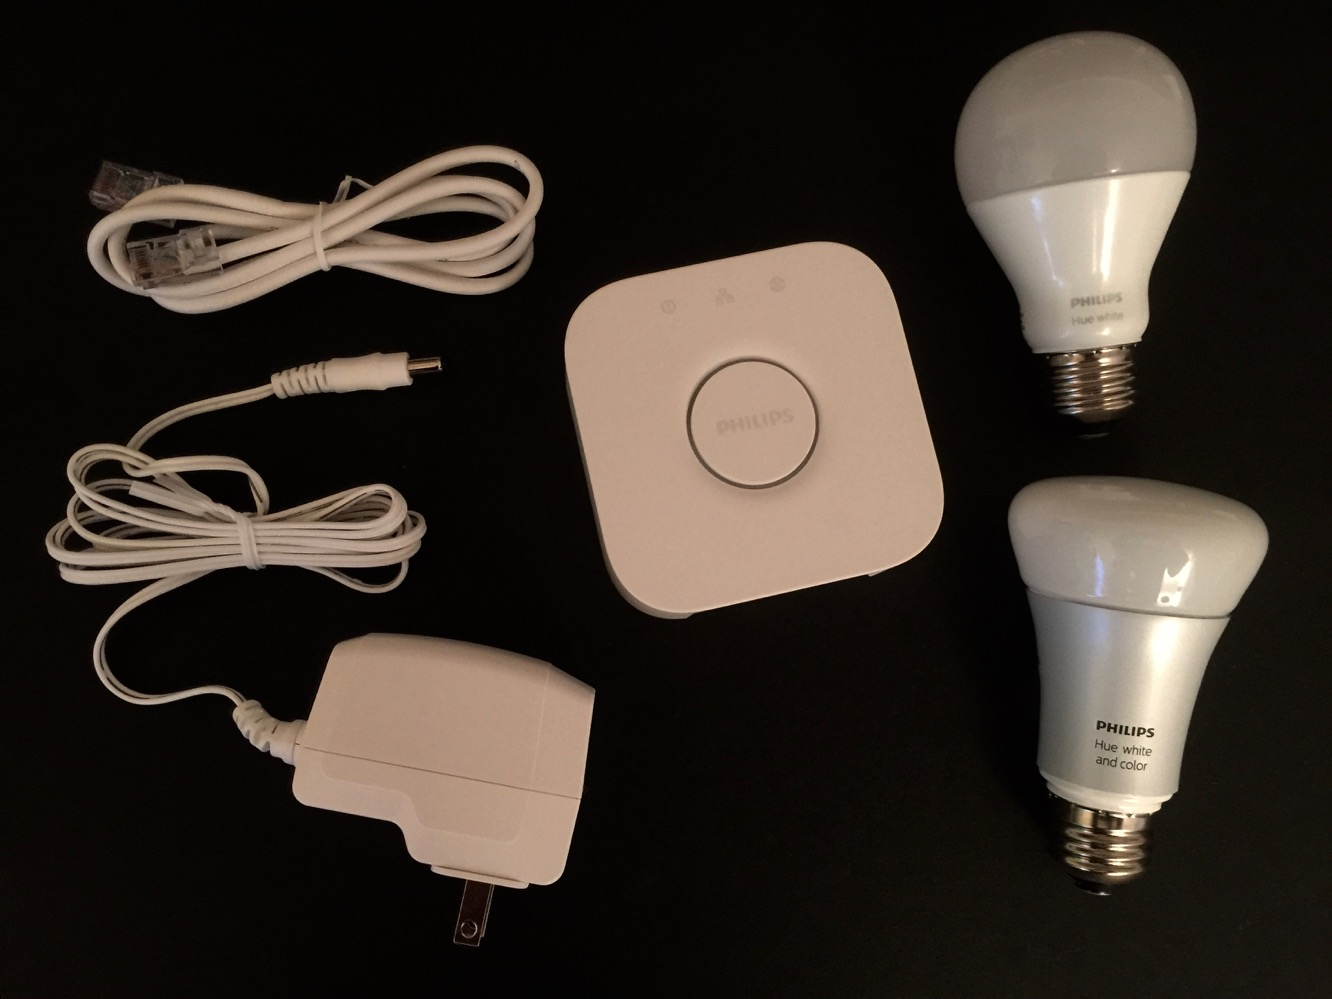 Philips Hue Bridge Homekit Review Philips Hue Homekit Bridge White And Color Ambiance